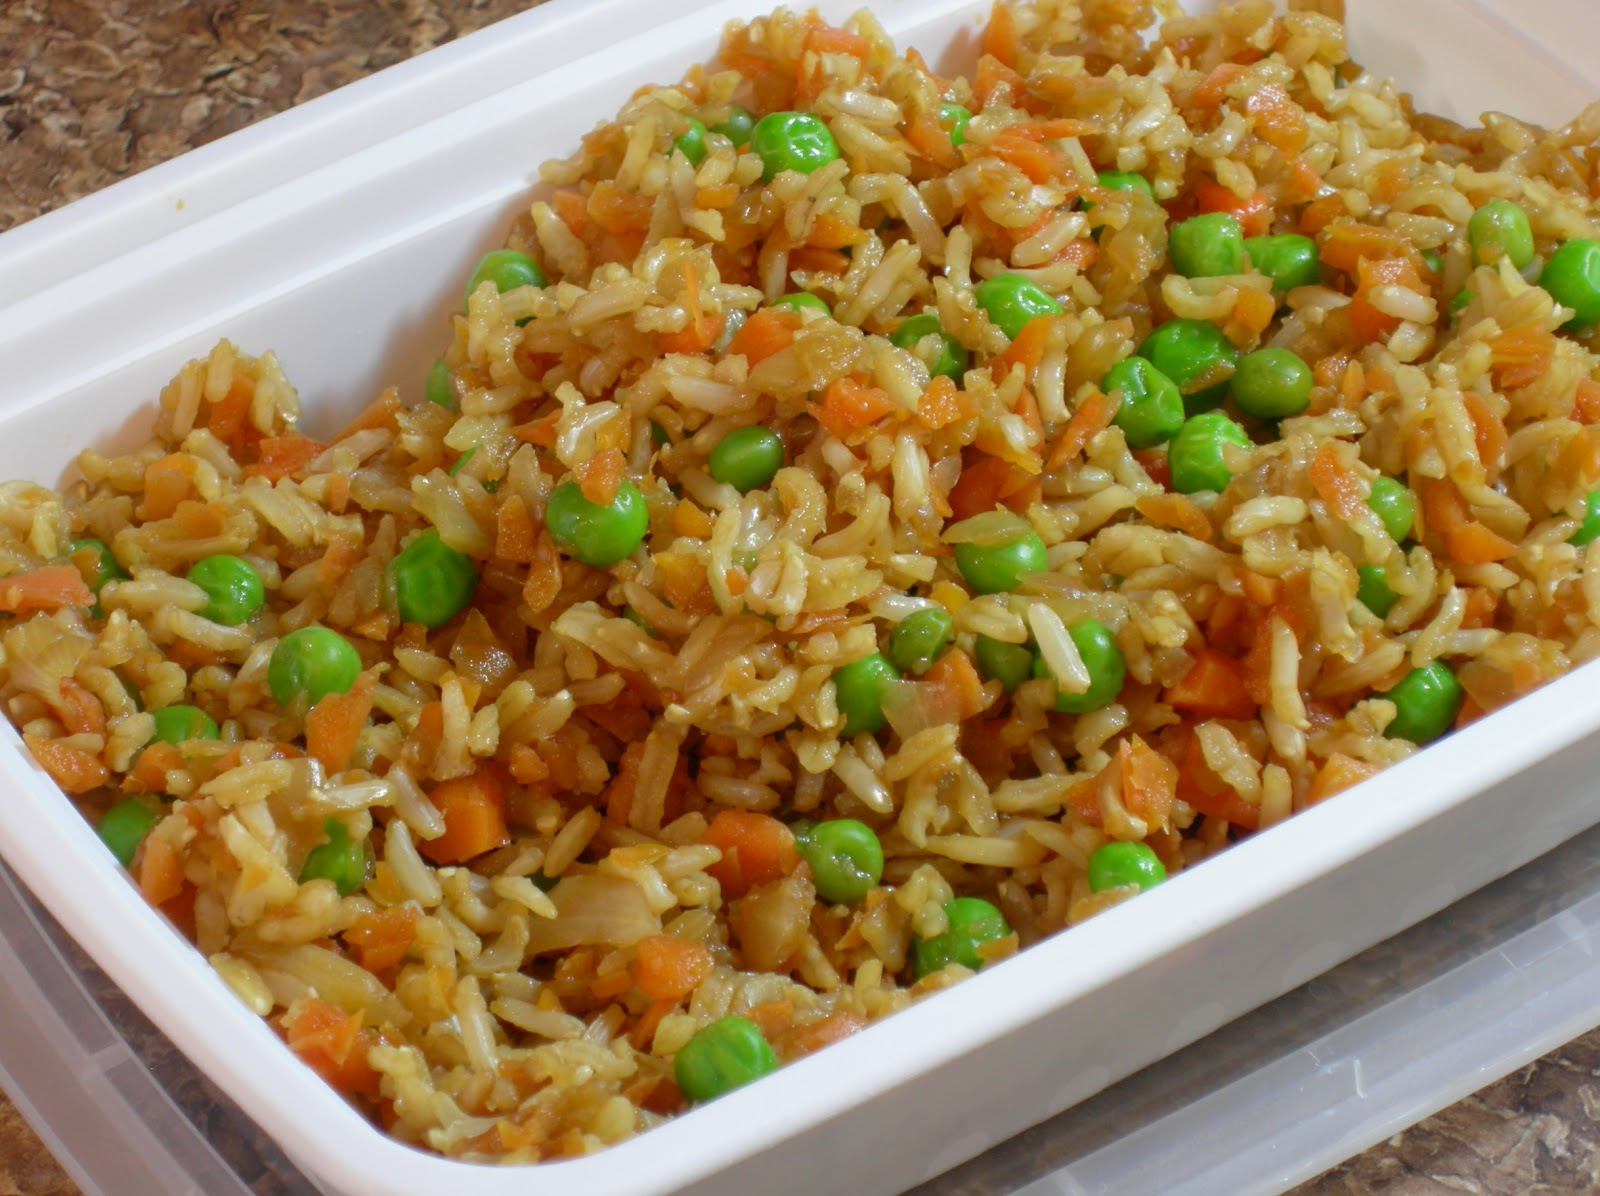 Additive-Free Eats: Chinese Fried Rice w/Homemade Soy Sauce